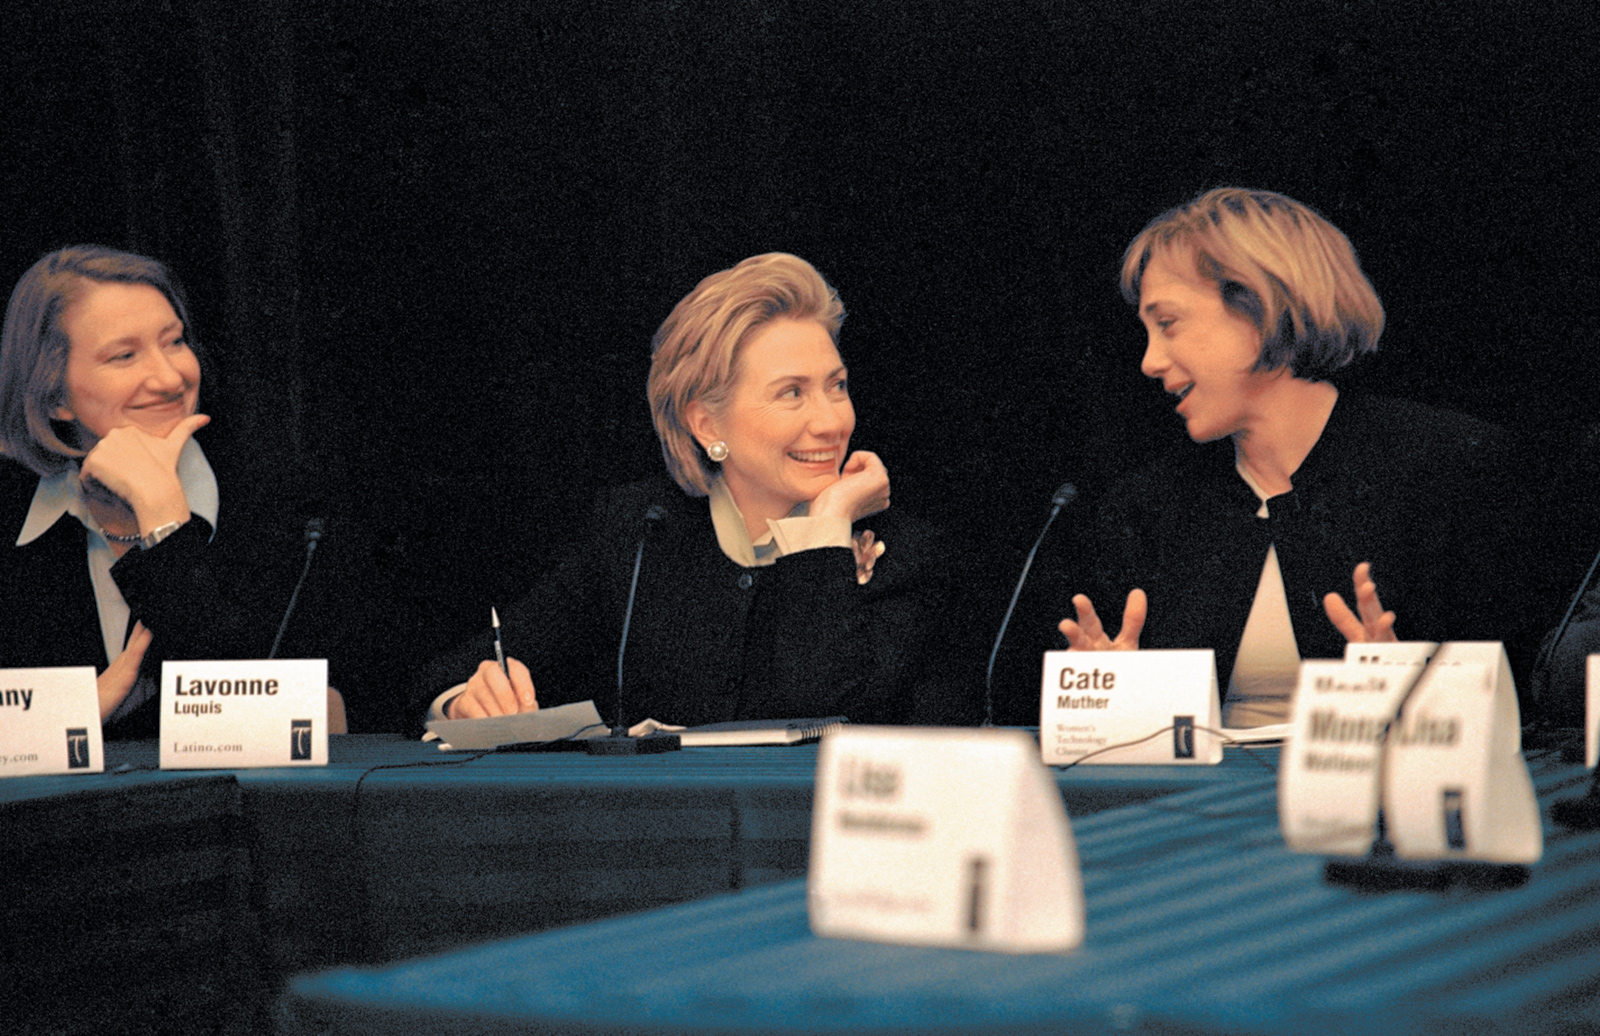 Hillary Clinton at a roundtable discussion about women and technology, San Francisco, March 2000. At left is Lavonne Luquis, cofounder of the Internet start-up Latino.com; at right is Cate Muther, founder of the Women's Technology Cluster (now called Astia), an incubator for female entrepreneurs in the high-tech industry.